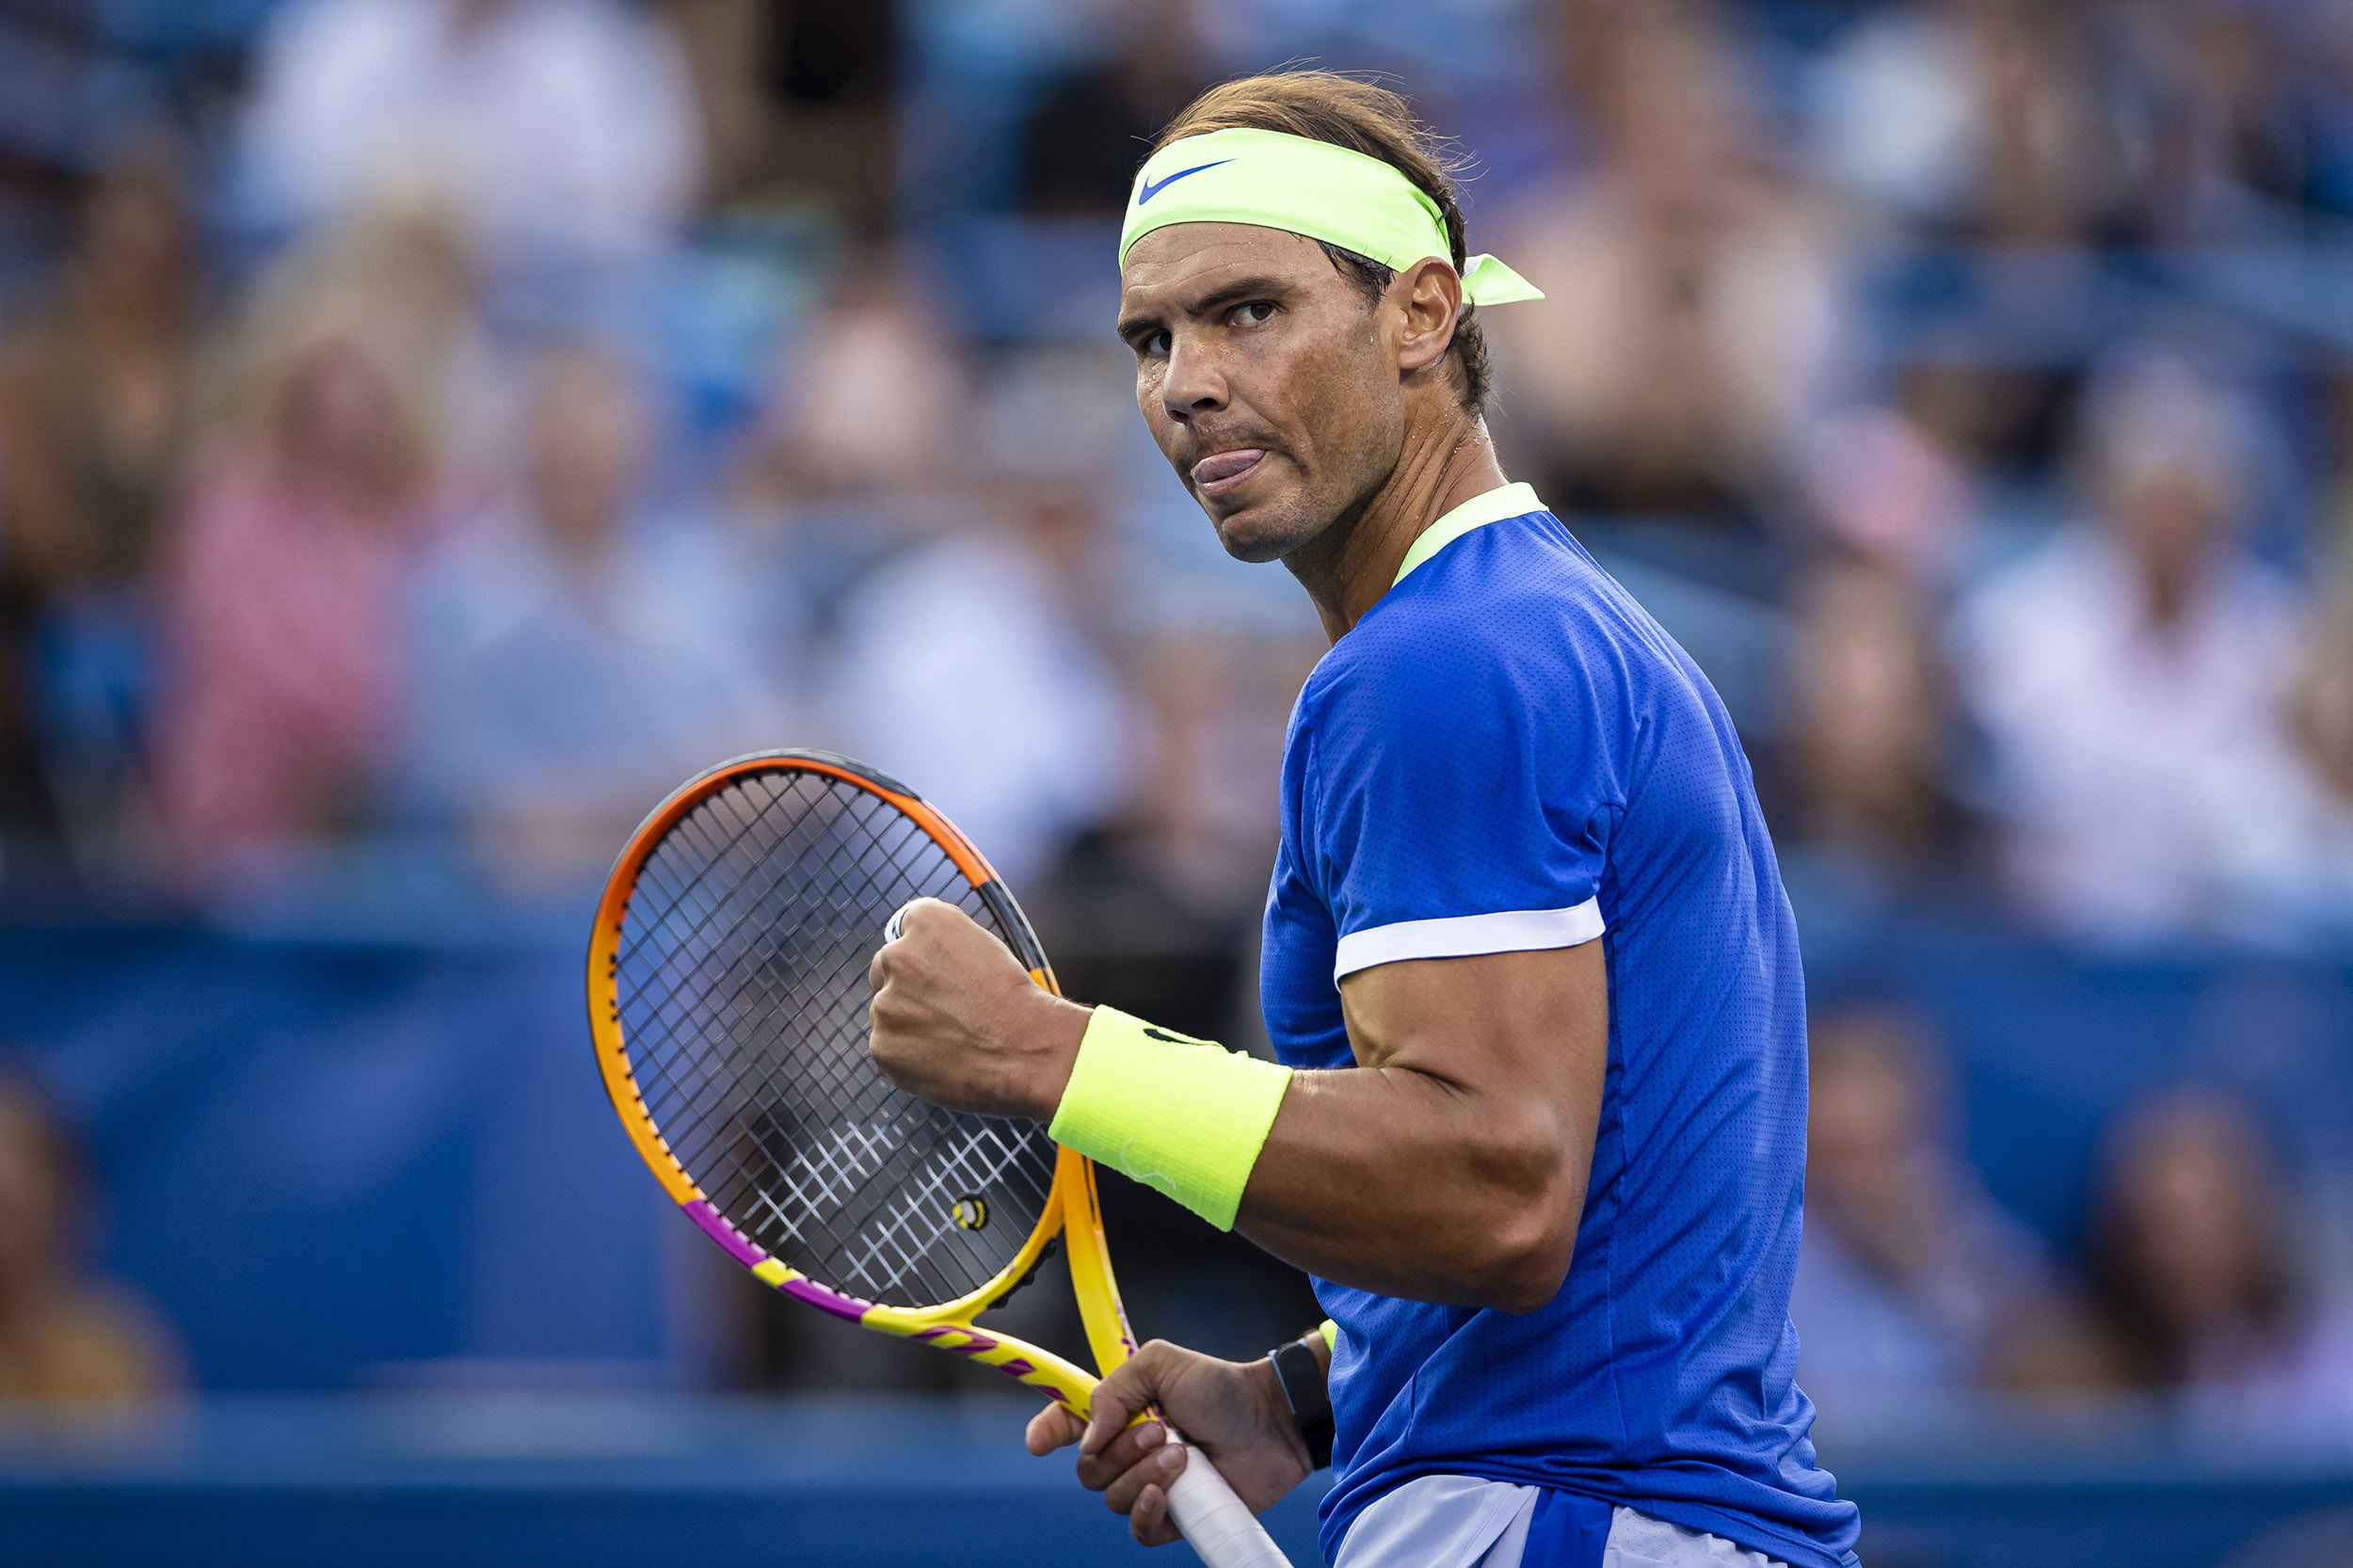 Rafael Nadal out of U.S. Open, ends season to heal injured foot